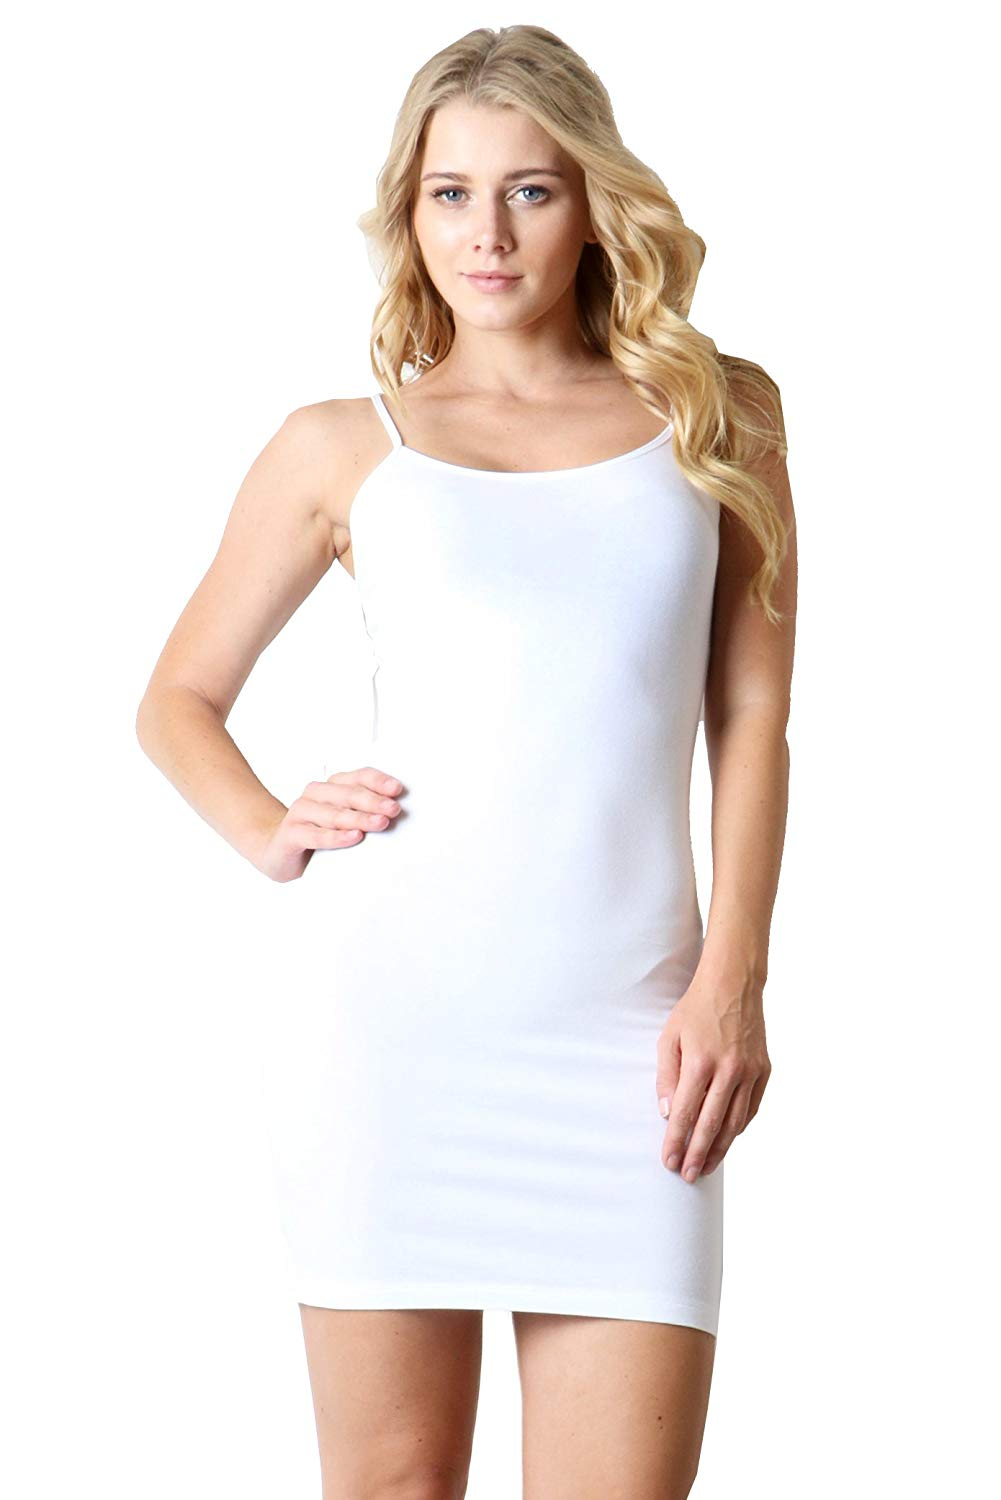 af4c1bf0a2b236 Get Quotations · ZENANA SLEEVELESS SCOOP NECK CAMI SHORT MONI BODYCON DRESS  WHITE